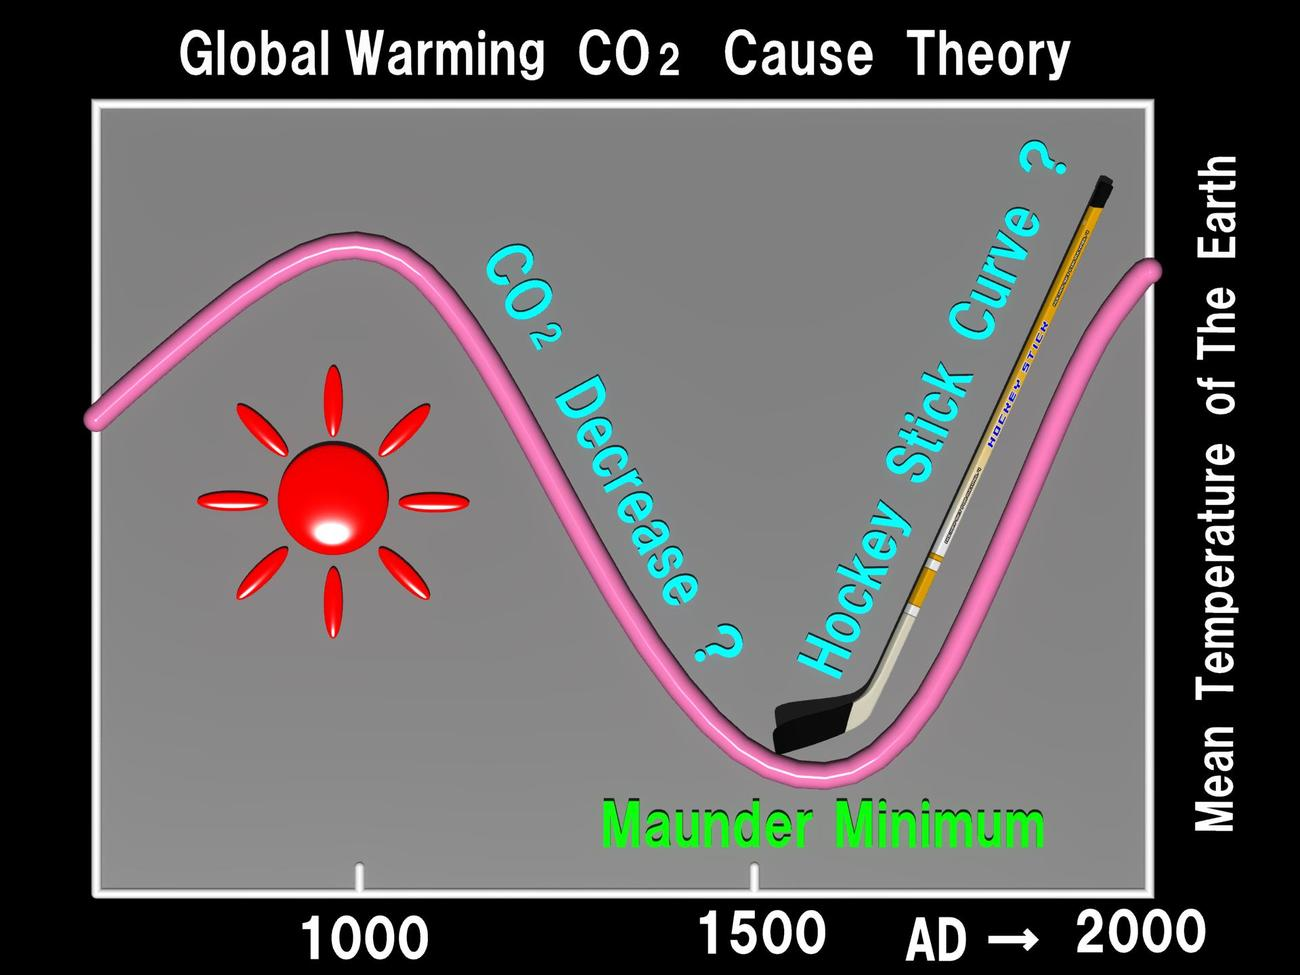 Global Warming CO2 Cause Theory